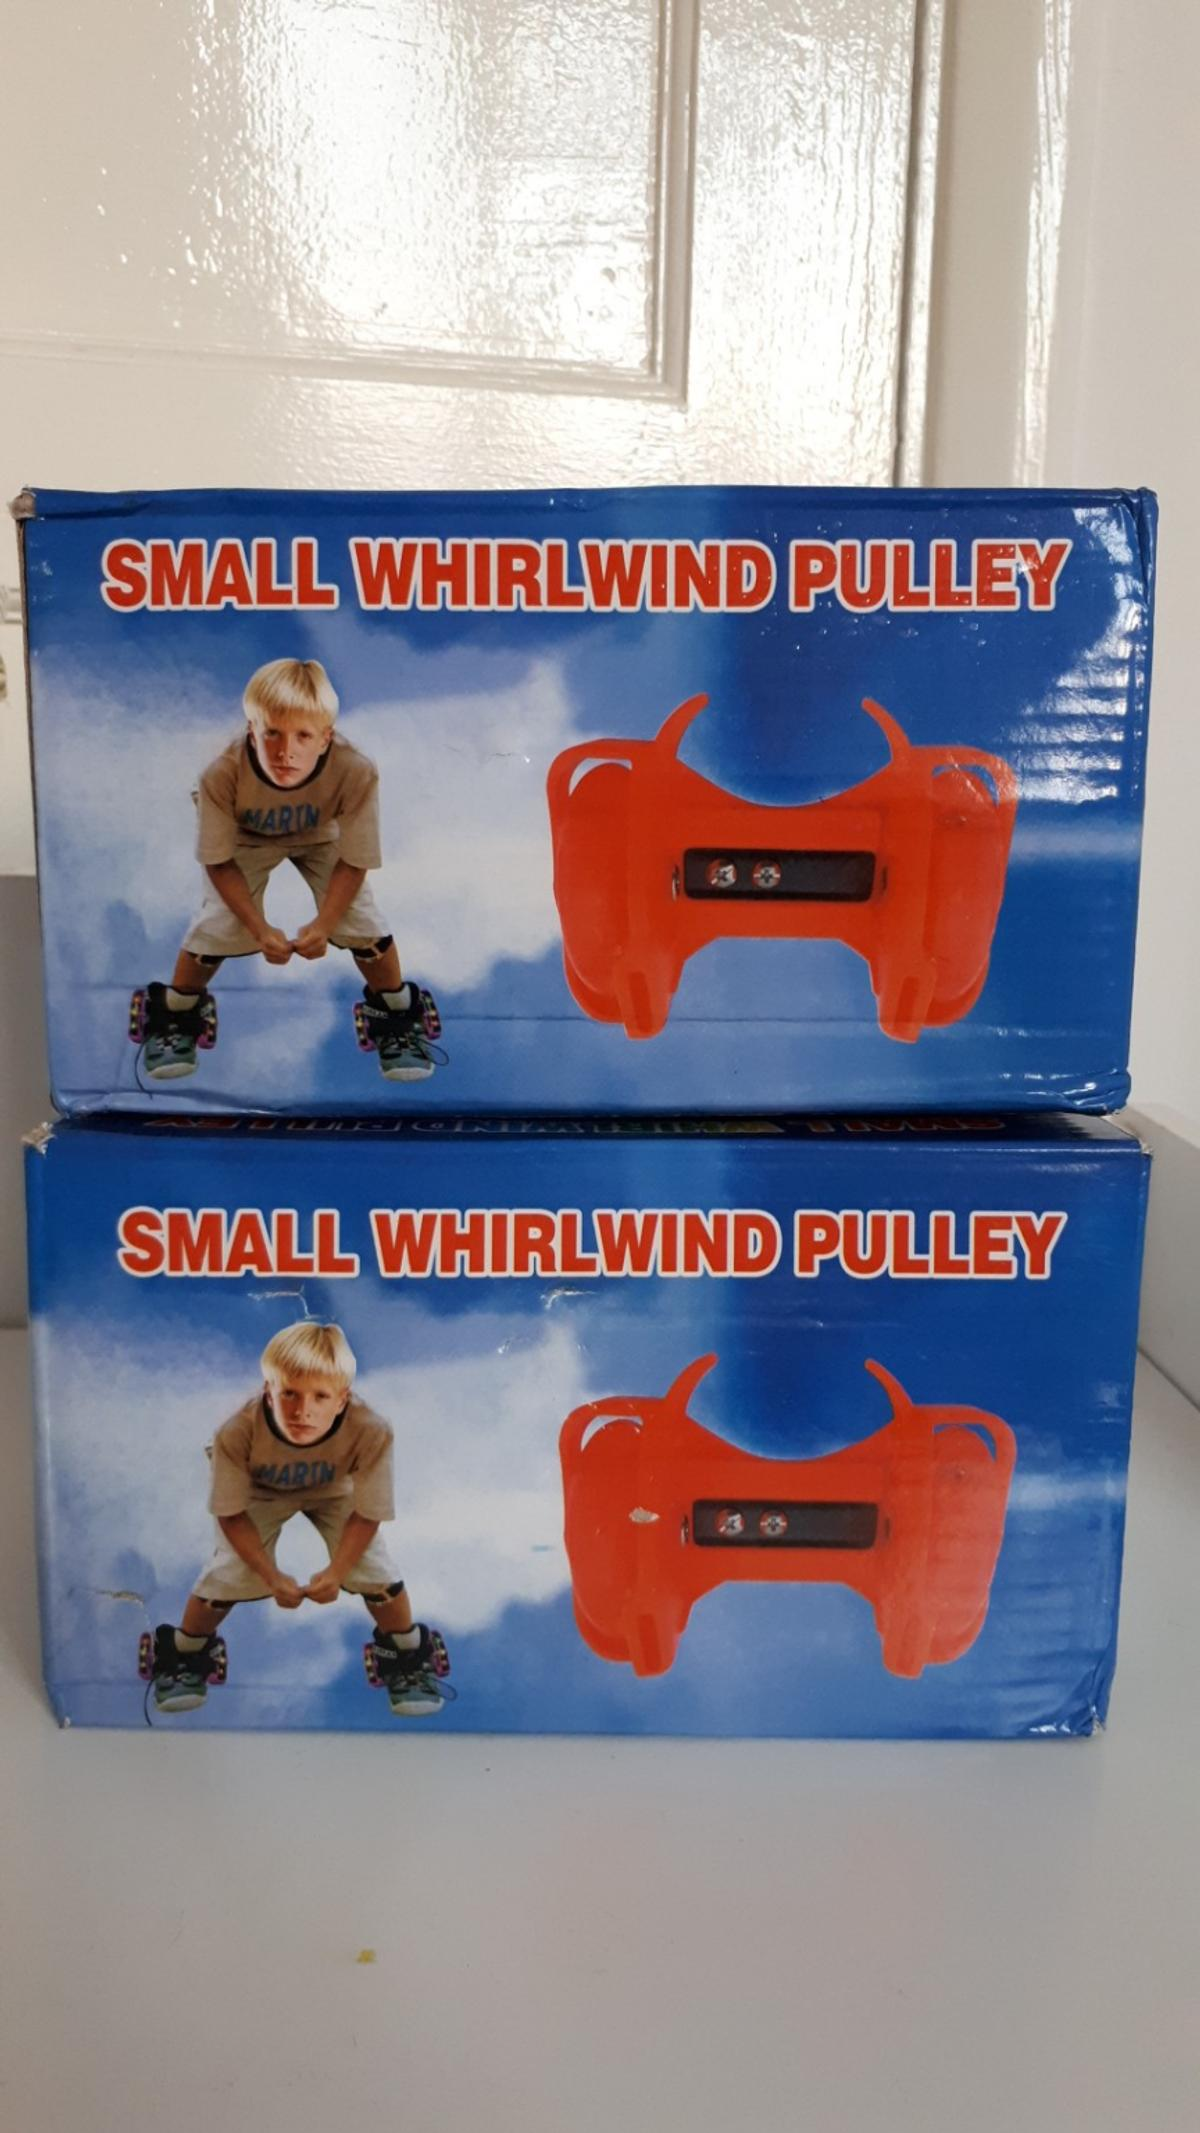 **X2 Small whirlwind pulley**